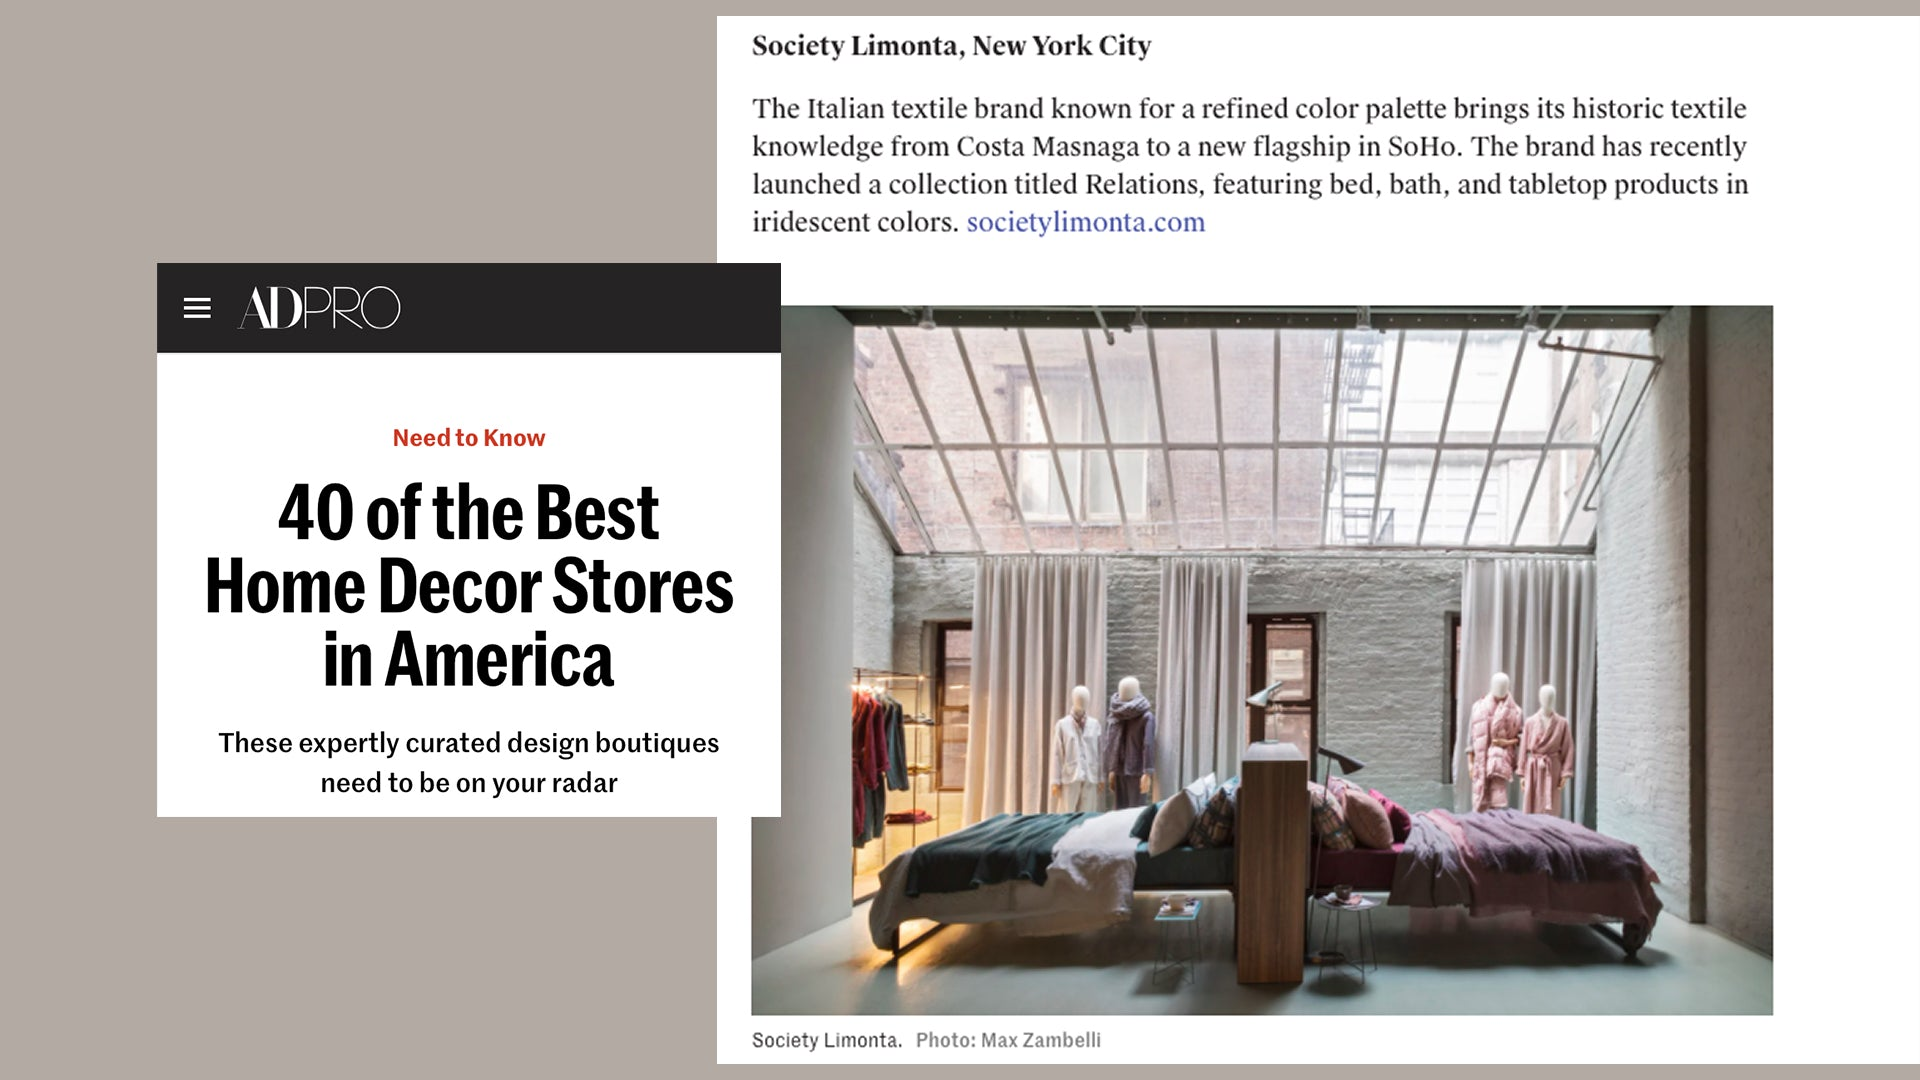 Society Limonta New York among the best home decor stores in America.